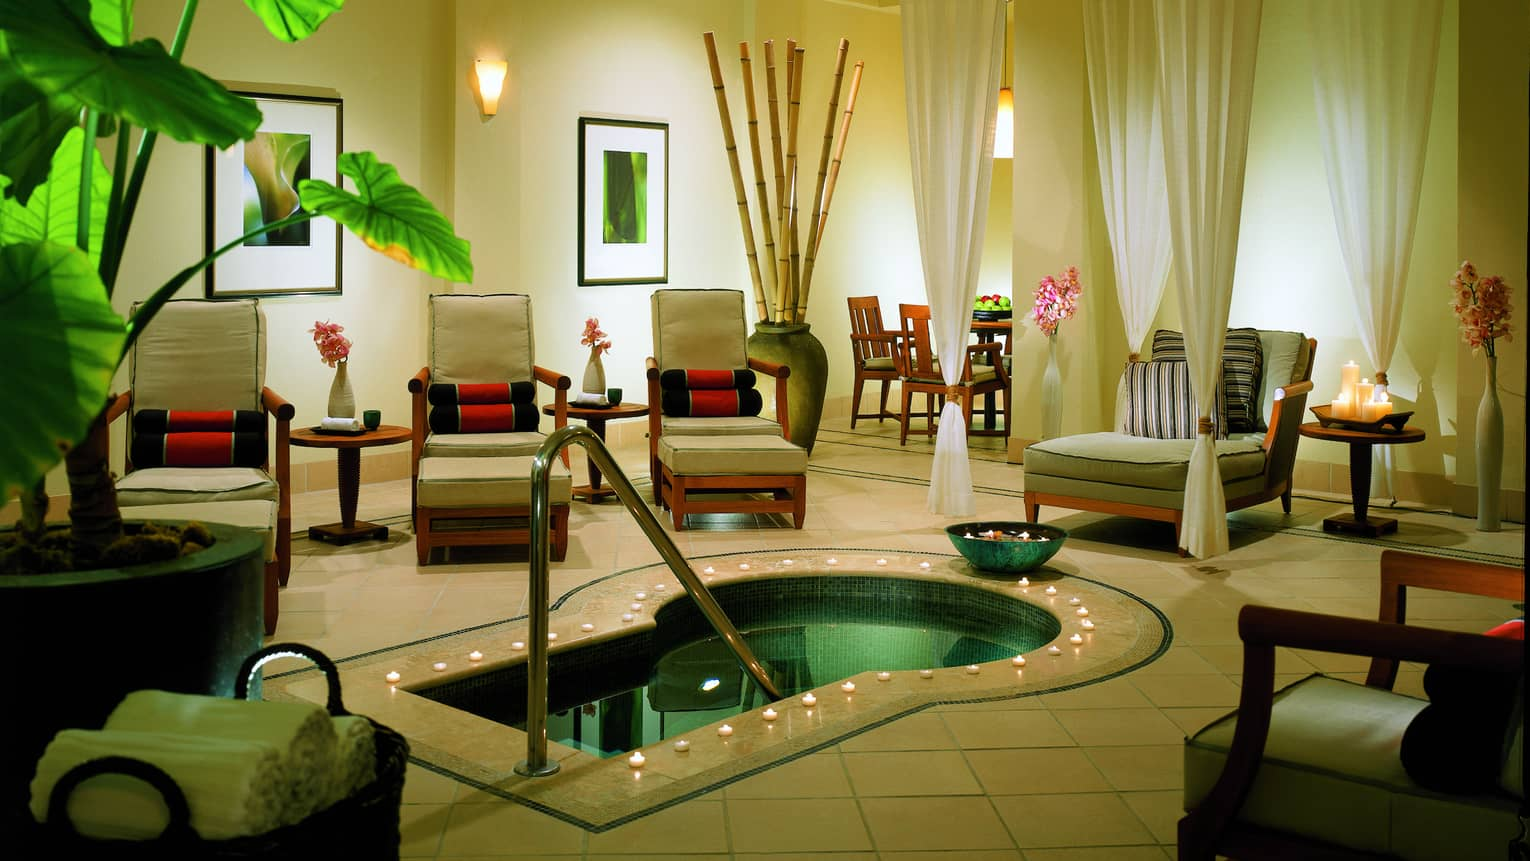 Tealight candles around small pool in spa room with lounge chairs, white curtains, plants